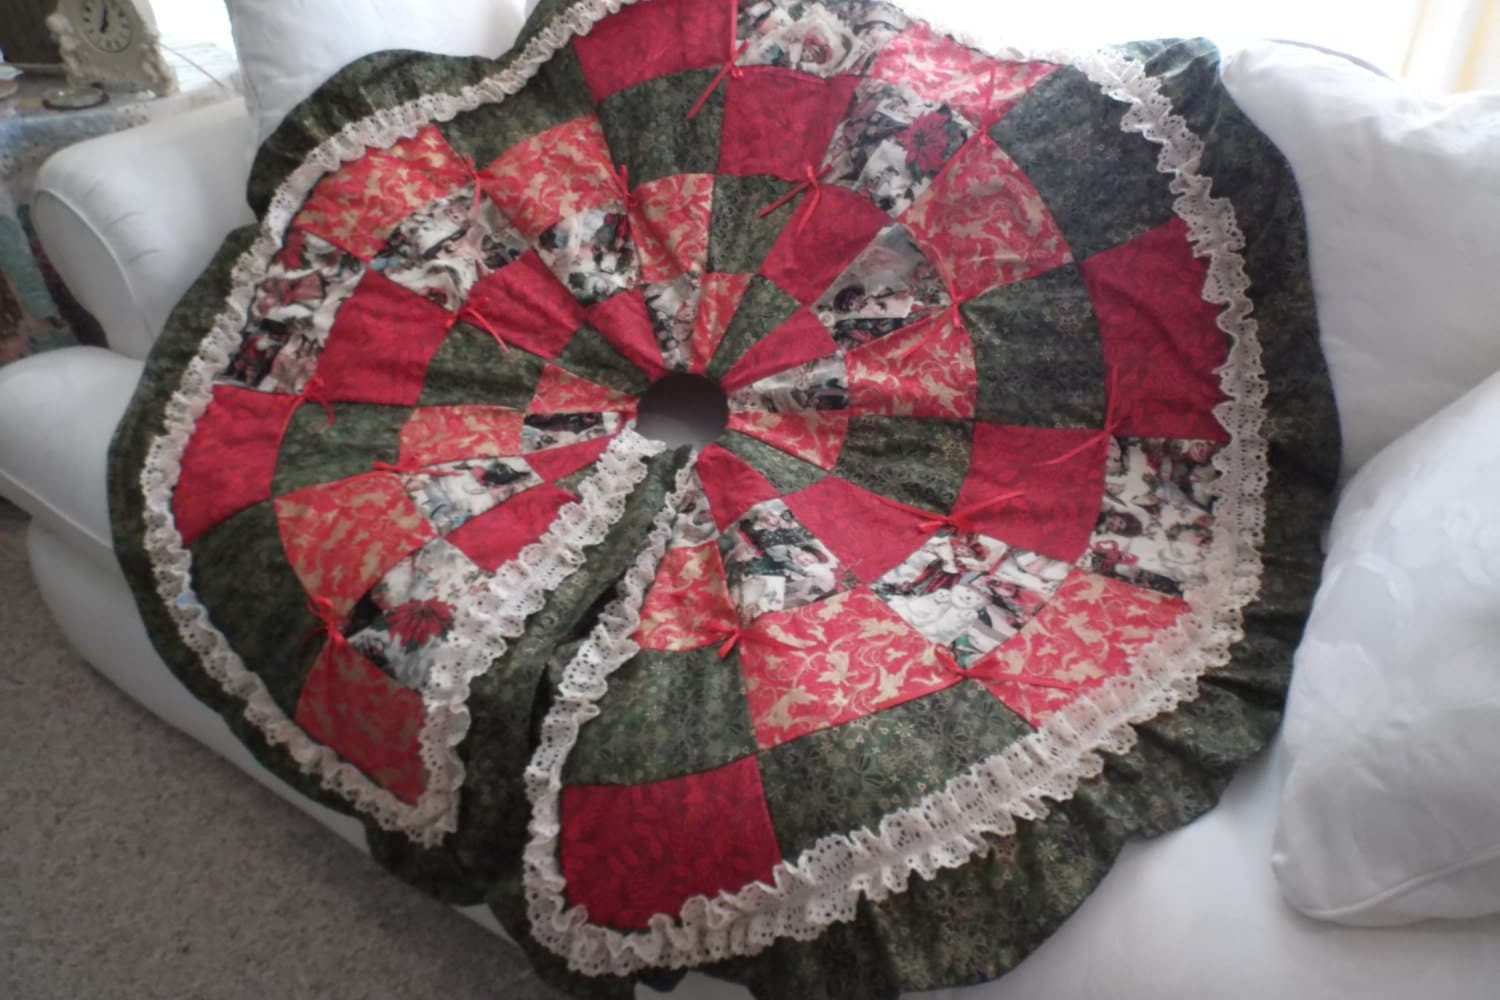 Quilted Christmas Tree Skirt Pinterest : Beautiful Handmade Quilted Christmas Tree Skirt by glendagail